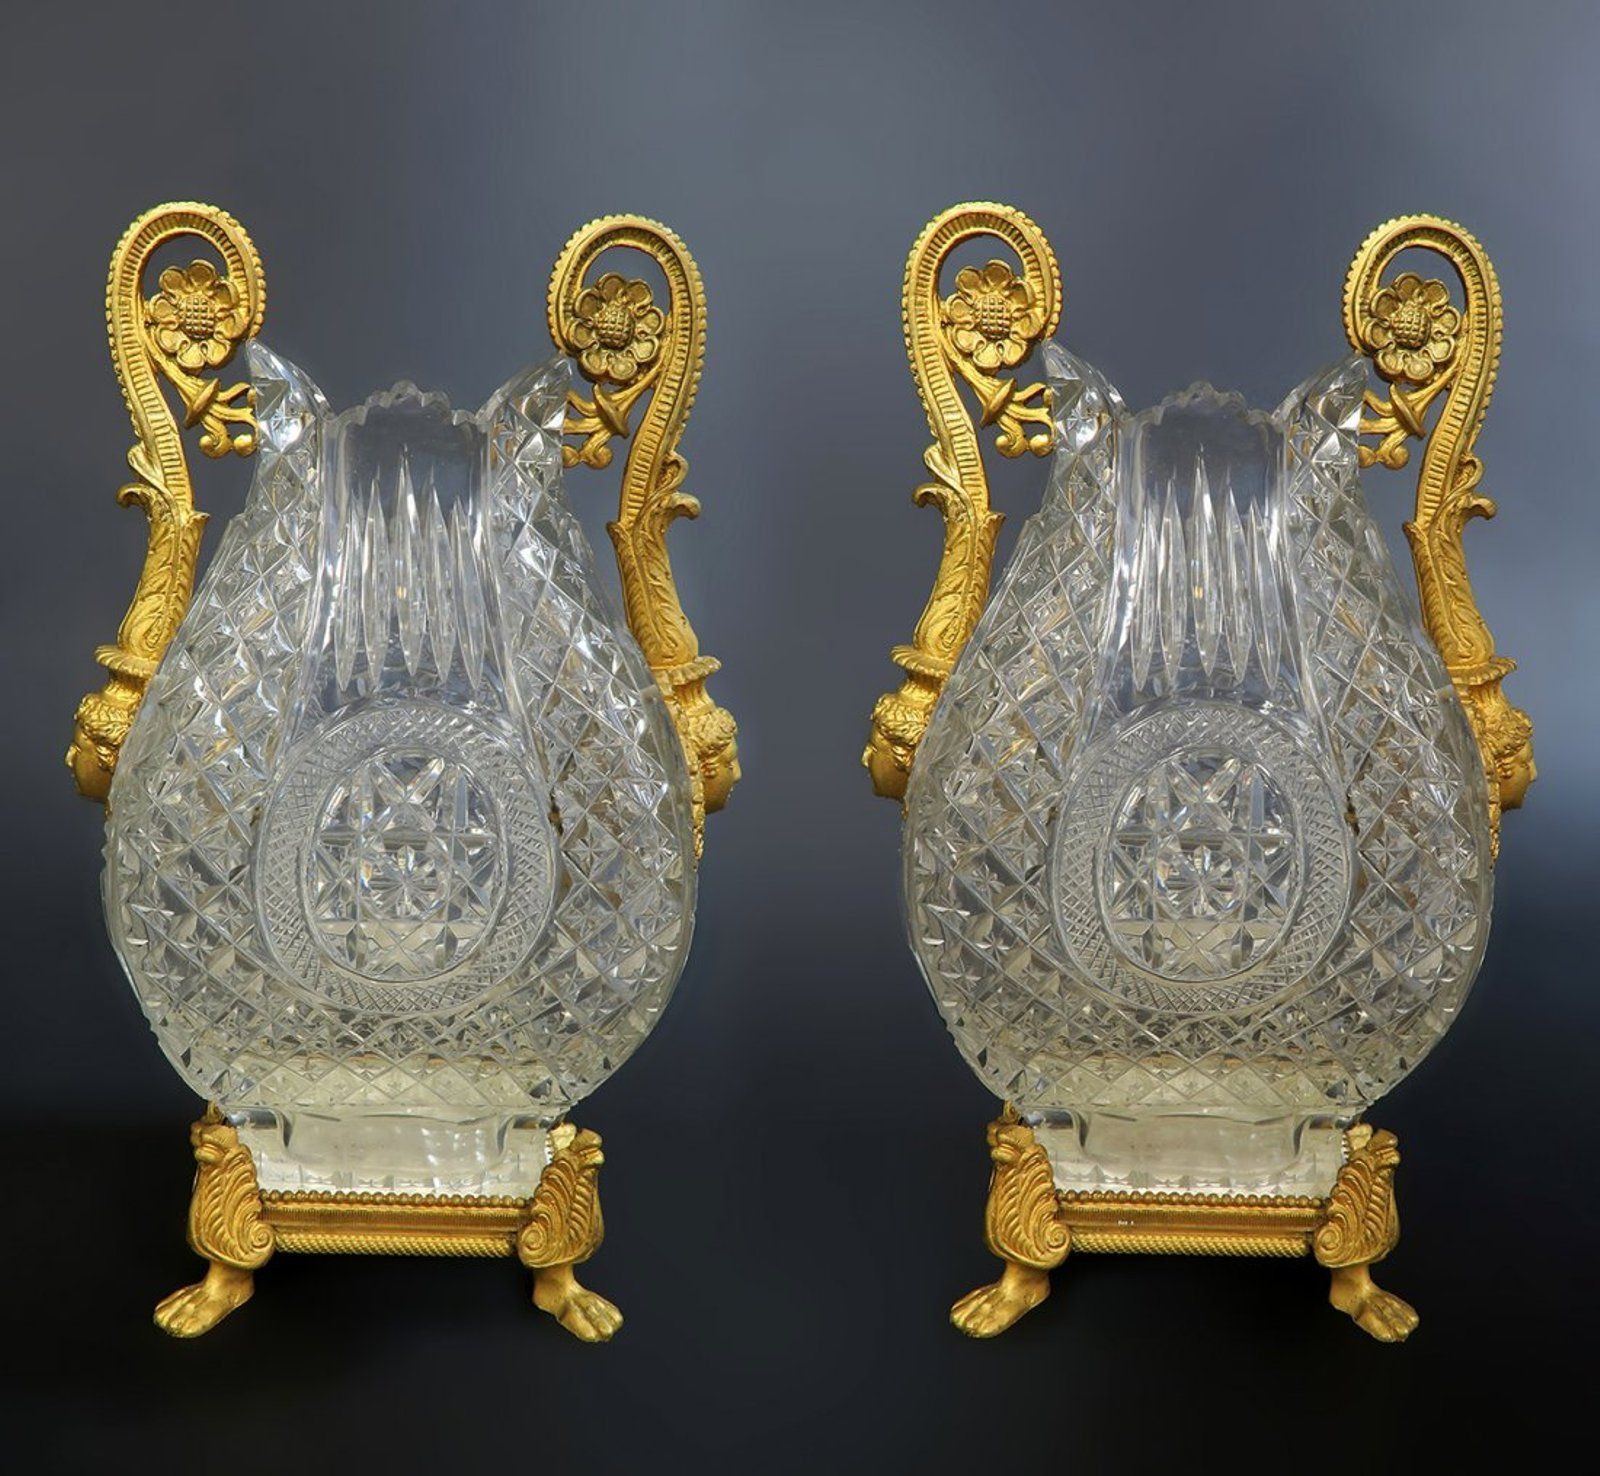 sand art vase of 44 gold and silver vase the weekly world regarding pair of museum quality bronze baccarat crystal vases on